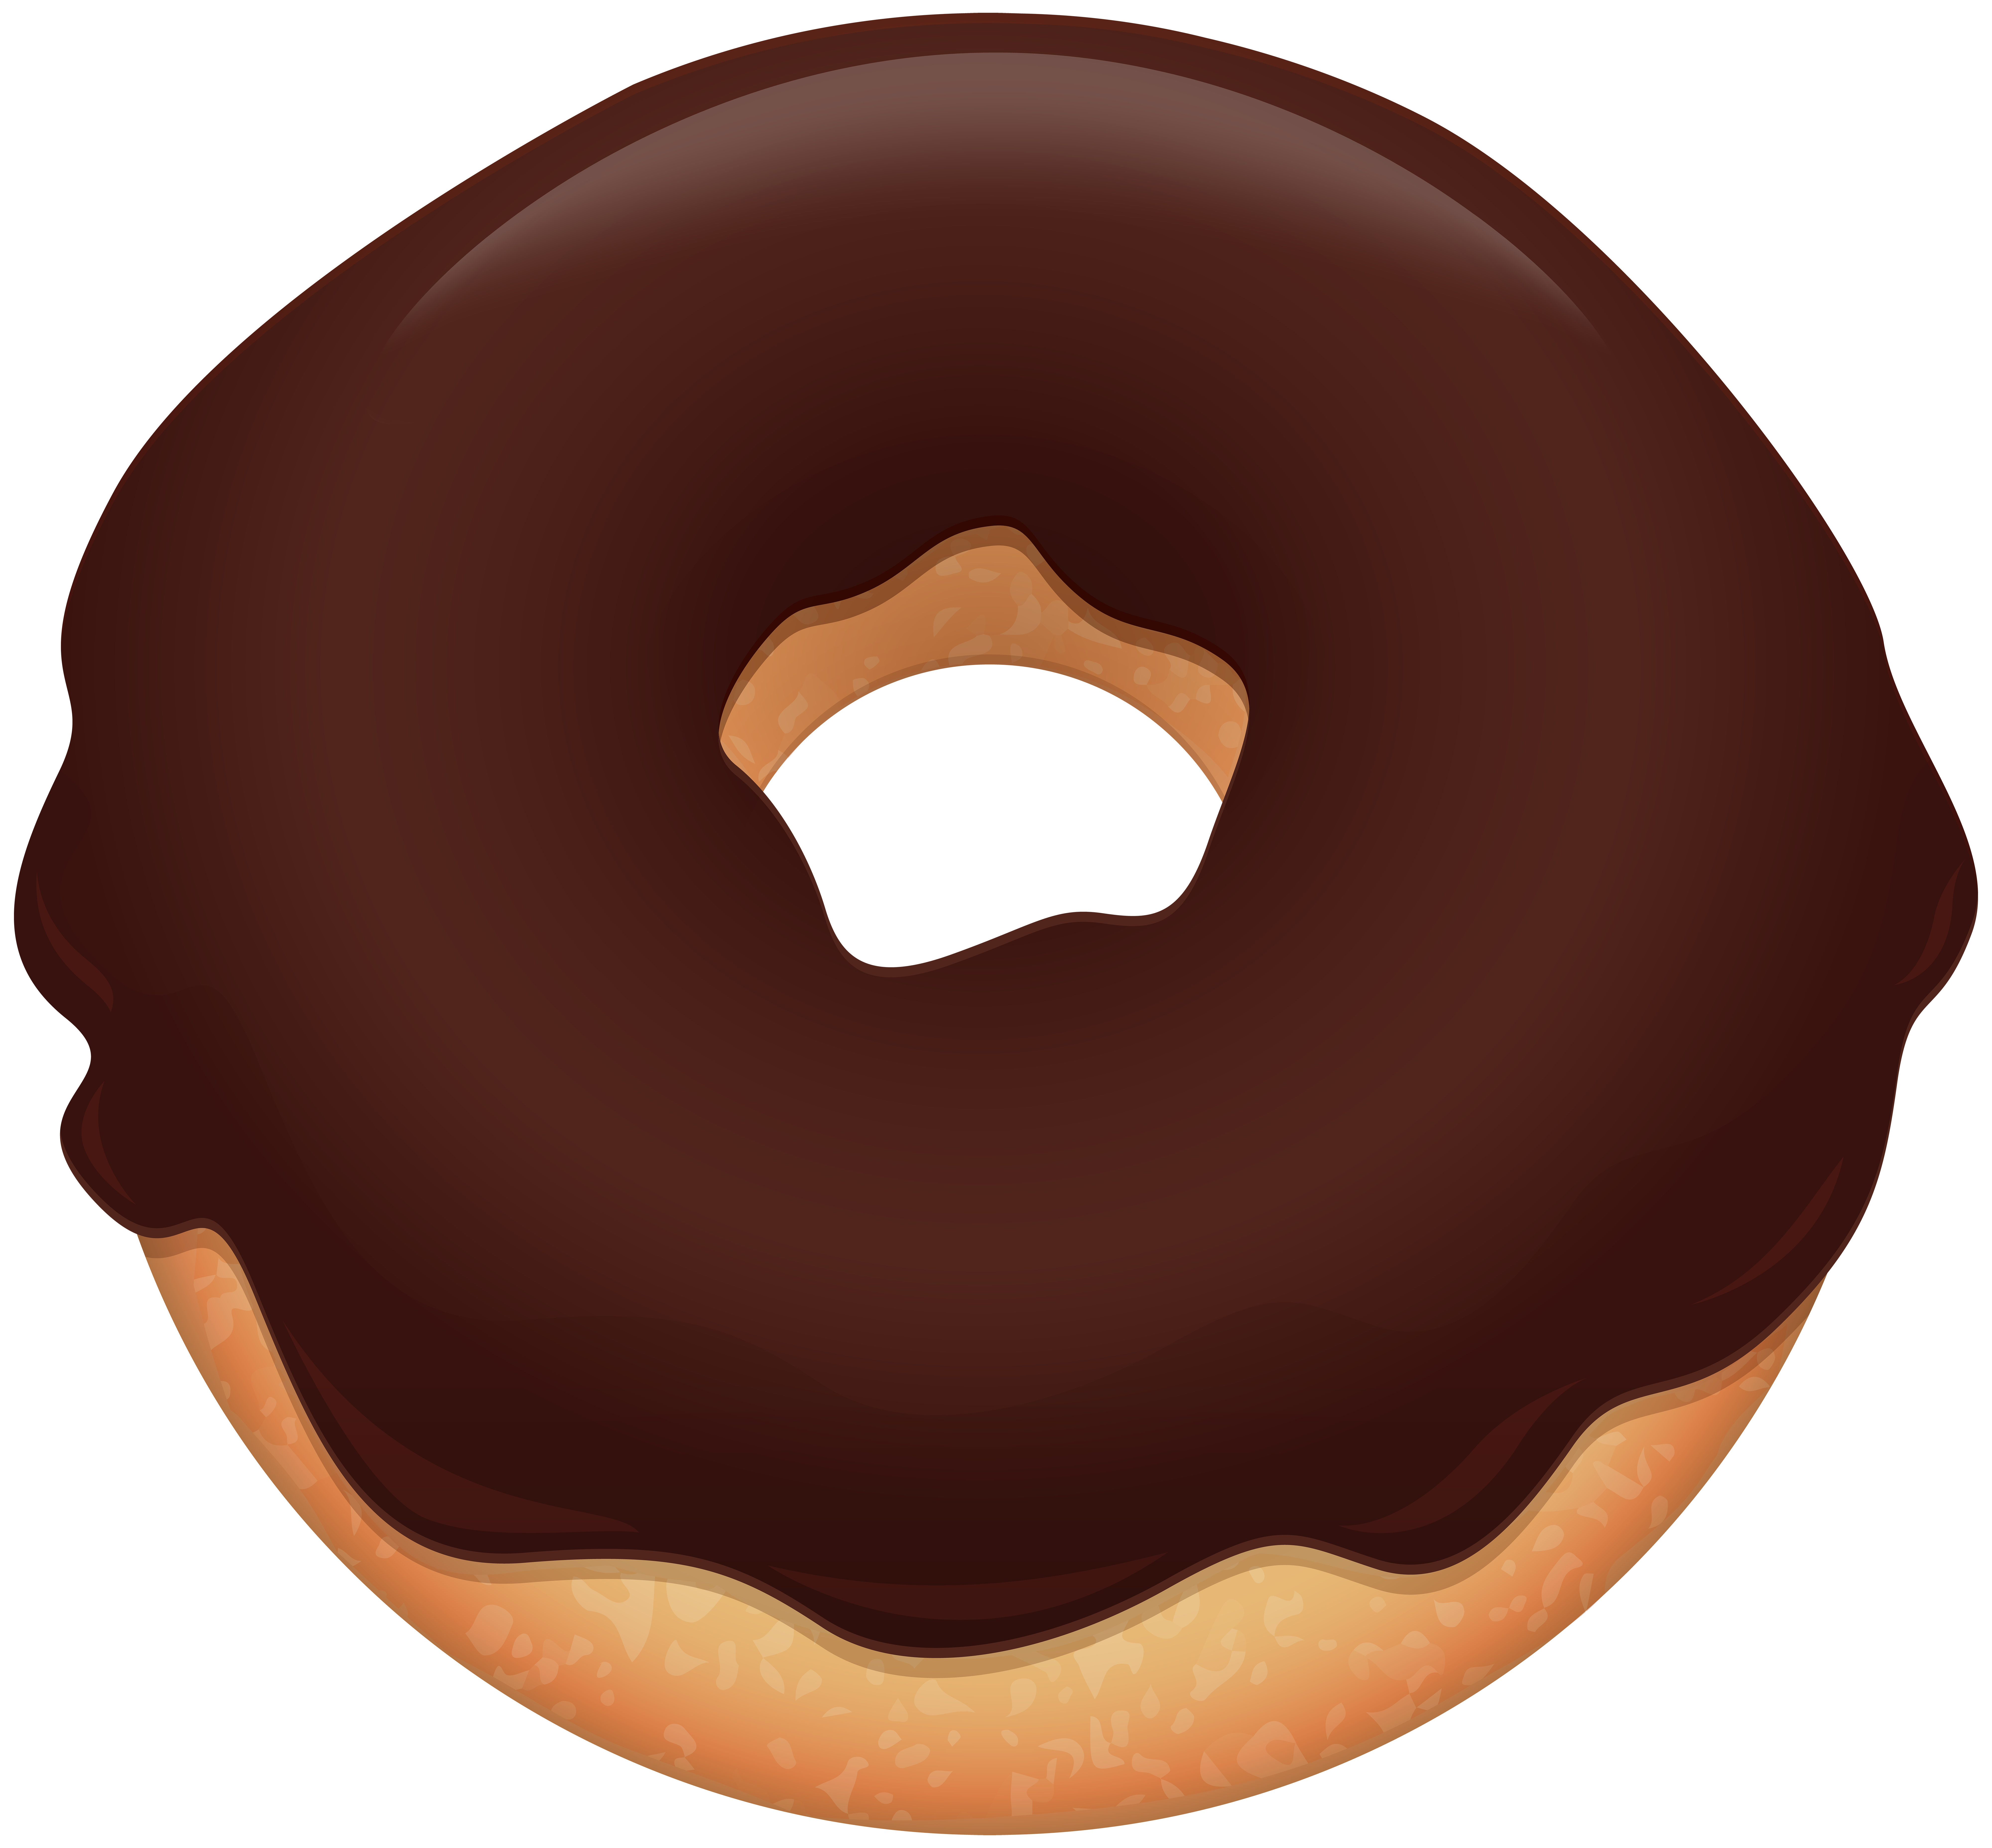 Donut png clipart. Clip art image gallery